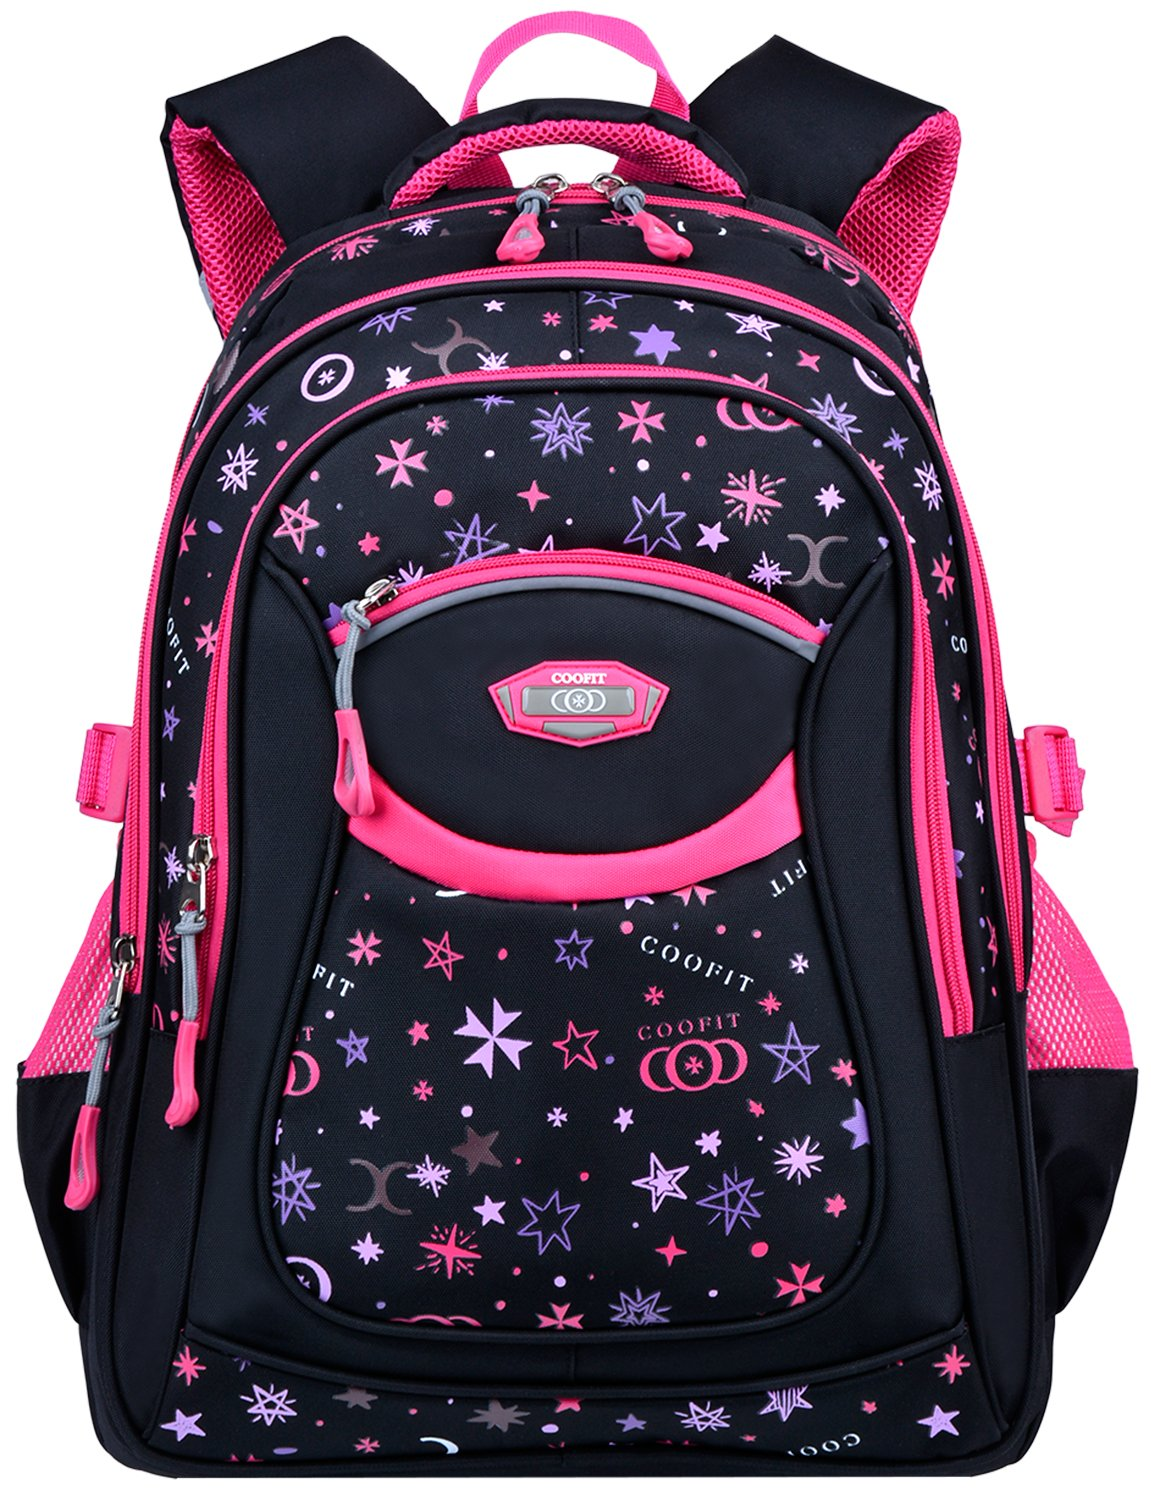 dbe042e564f0 Coofit backpacks for girls school bags cute backpacks childrens backpack  school backpack for girls kids backpacks